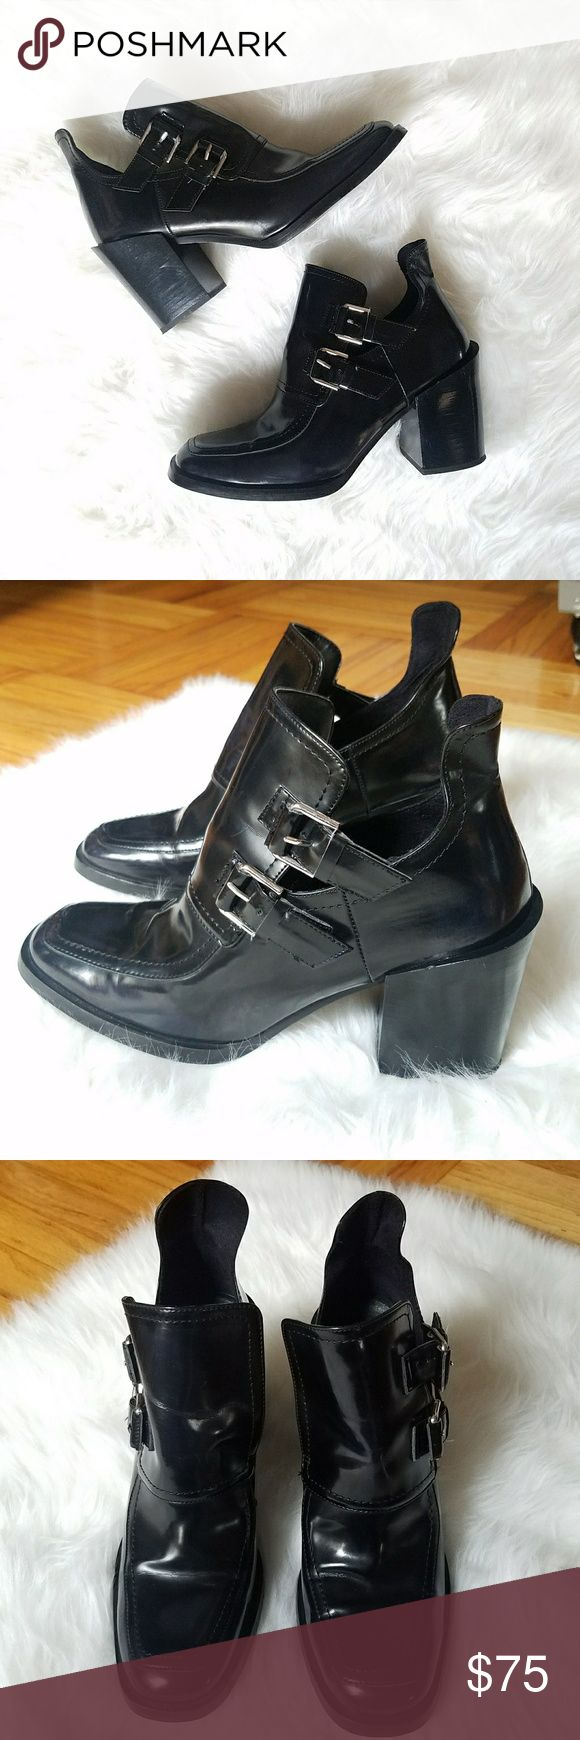 Zara Womens Black Chunky Heel Ankle Bootie sz 40 In great barely worn condition  (See pics!)  Loafer ankle chunky heel bootie with buckle detail  Size 40 UK / 10 US Zara Shoes Ankle Boots & Booties